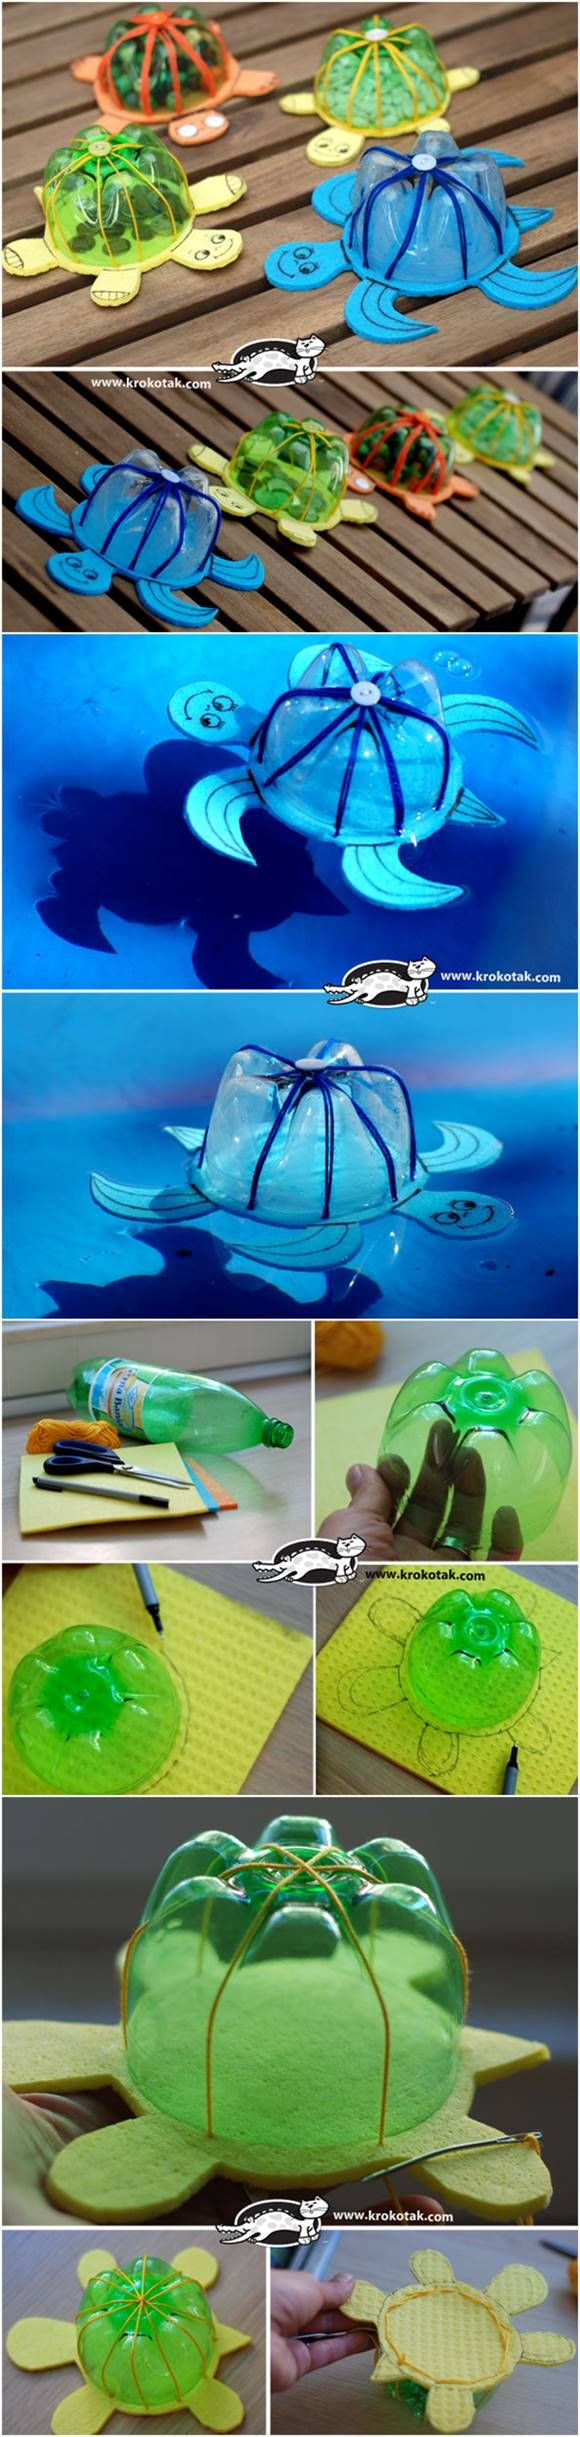 How to Make DIY Turtle Toys from Recycled Plastic Bottles #plasticbottleart